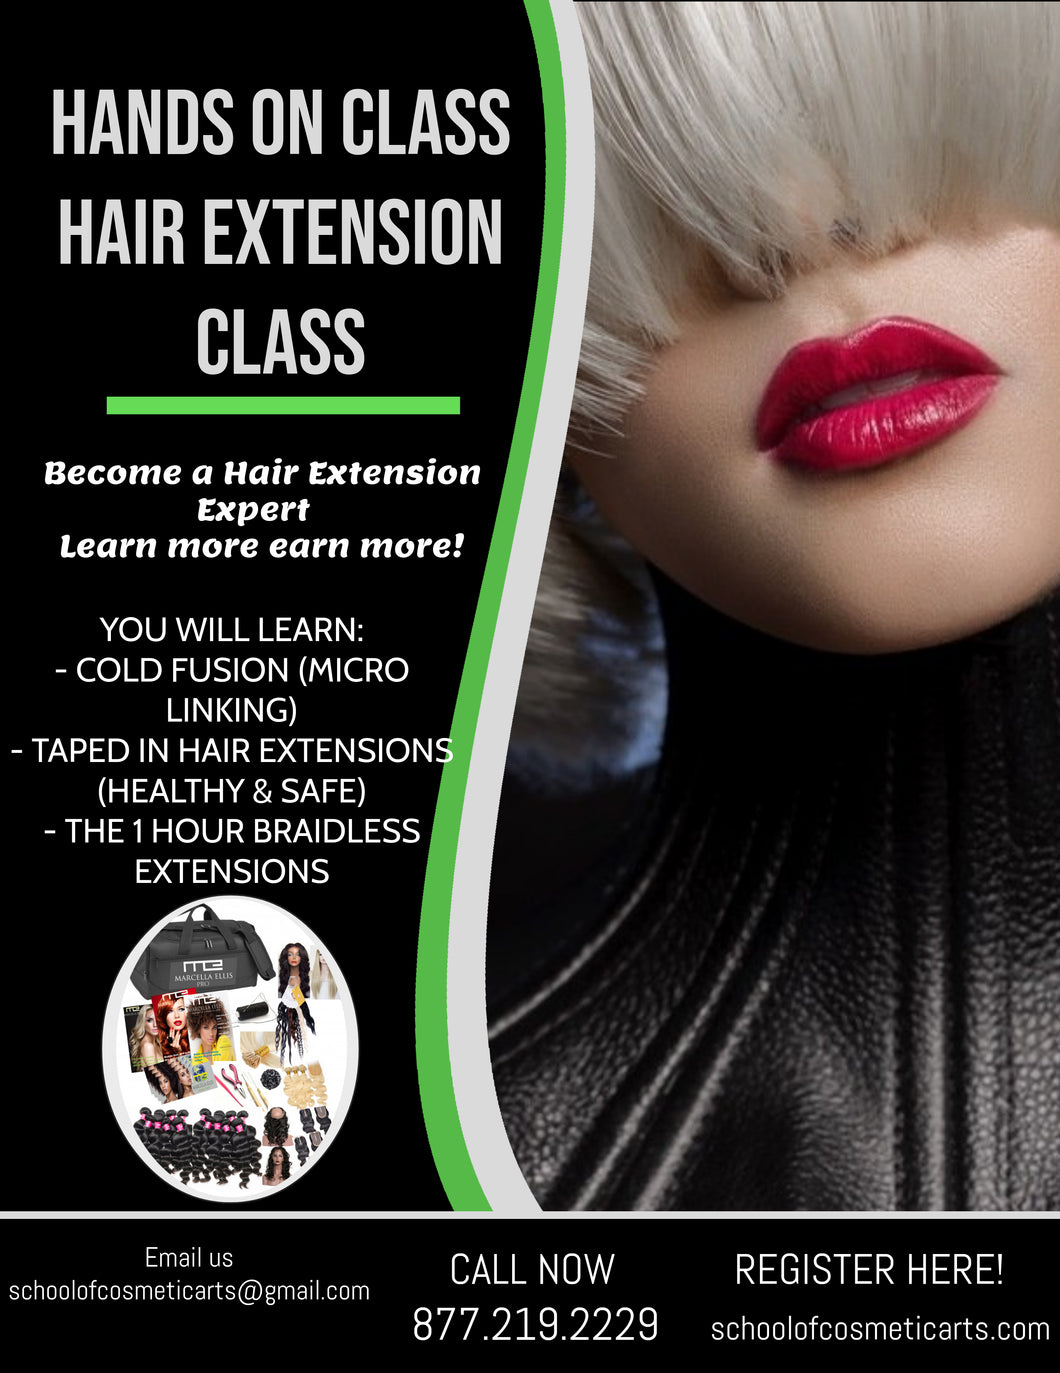 Hair Extension 2 or 4 Week Certification Program